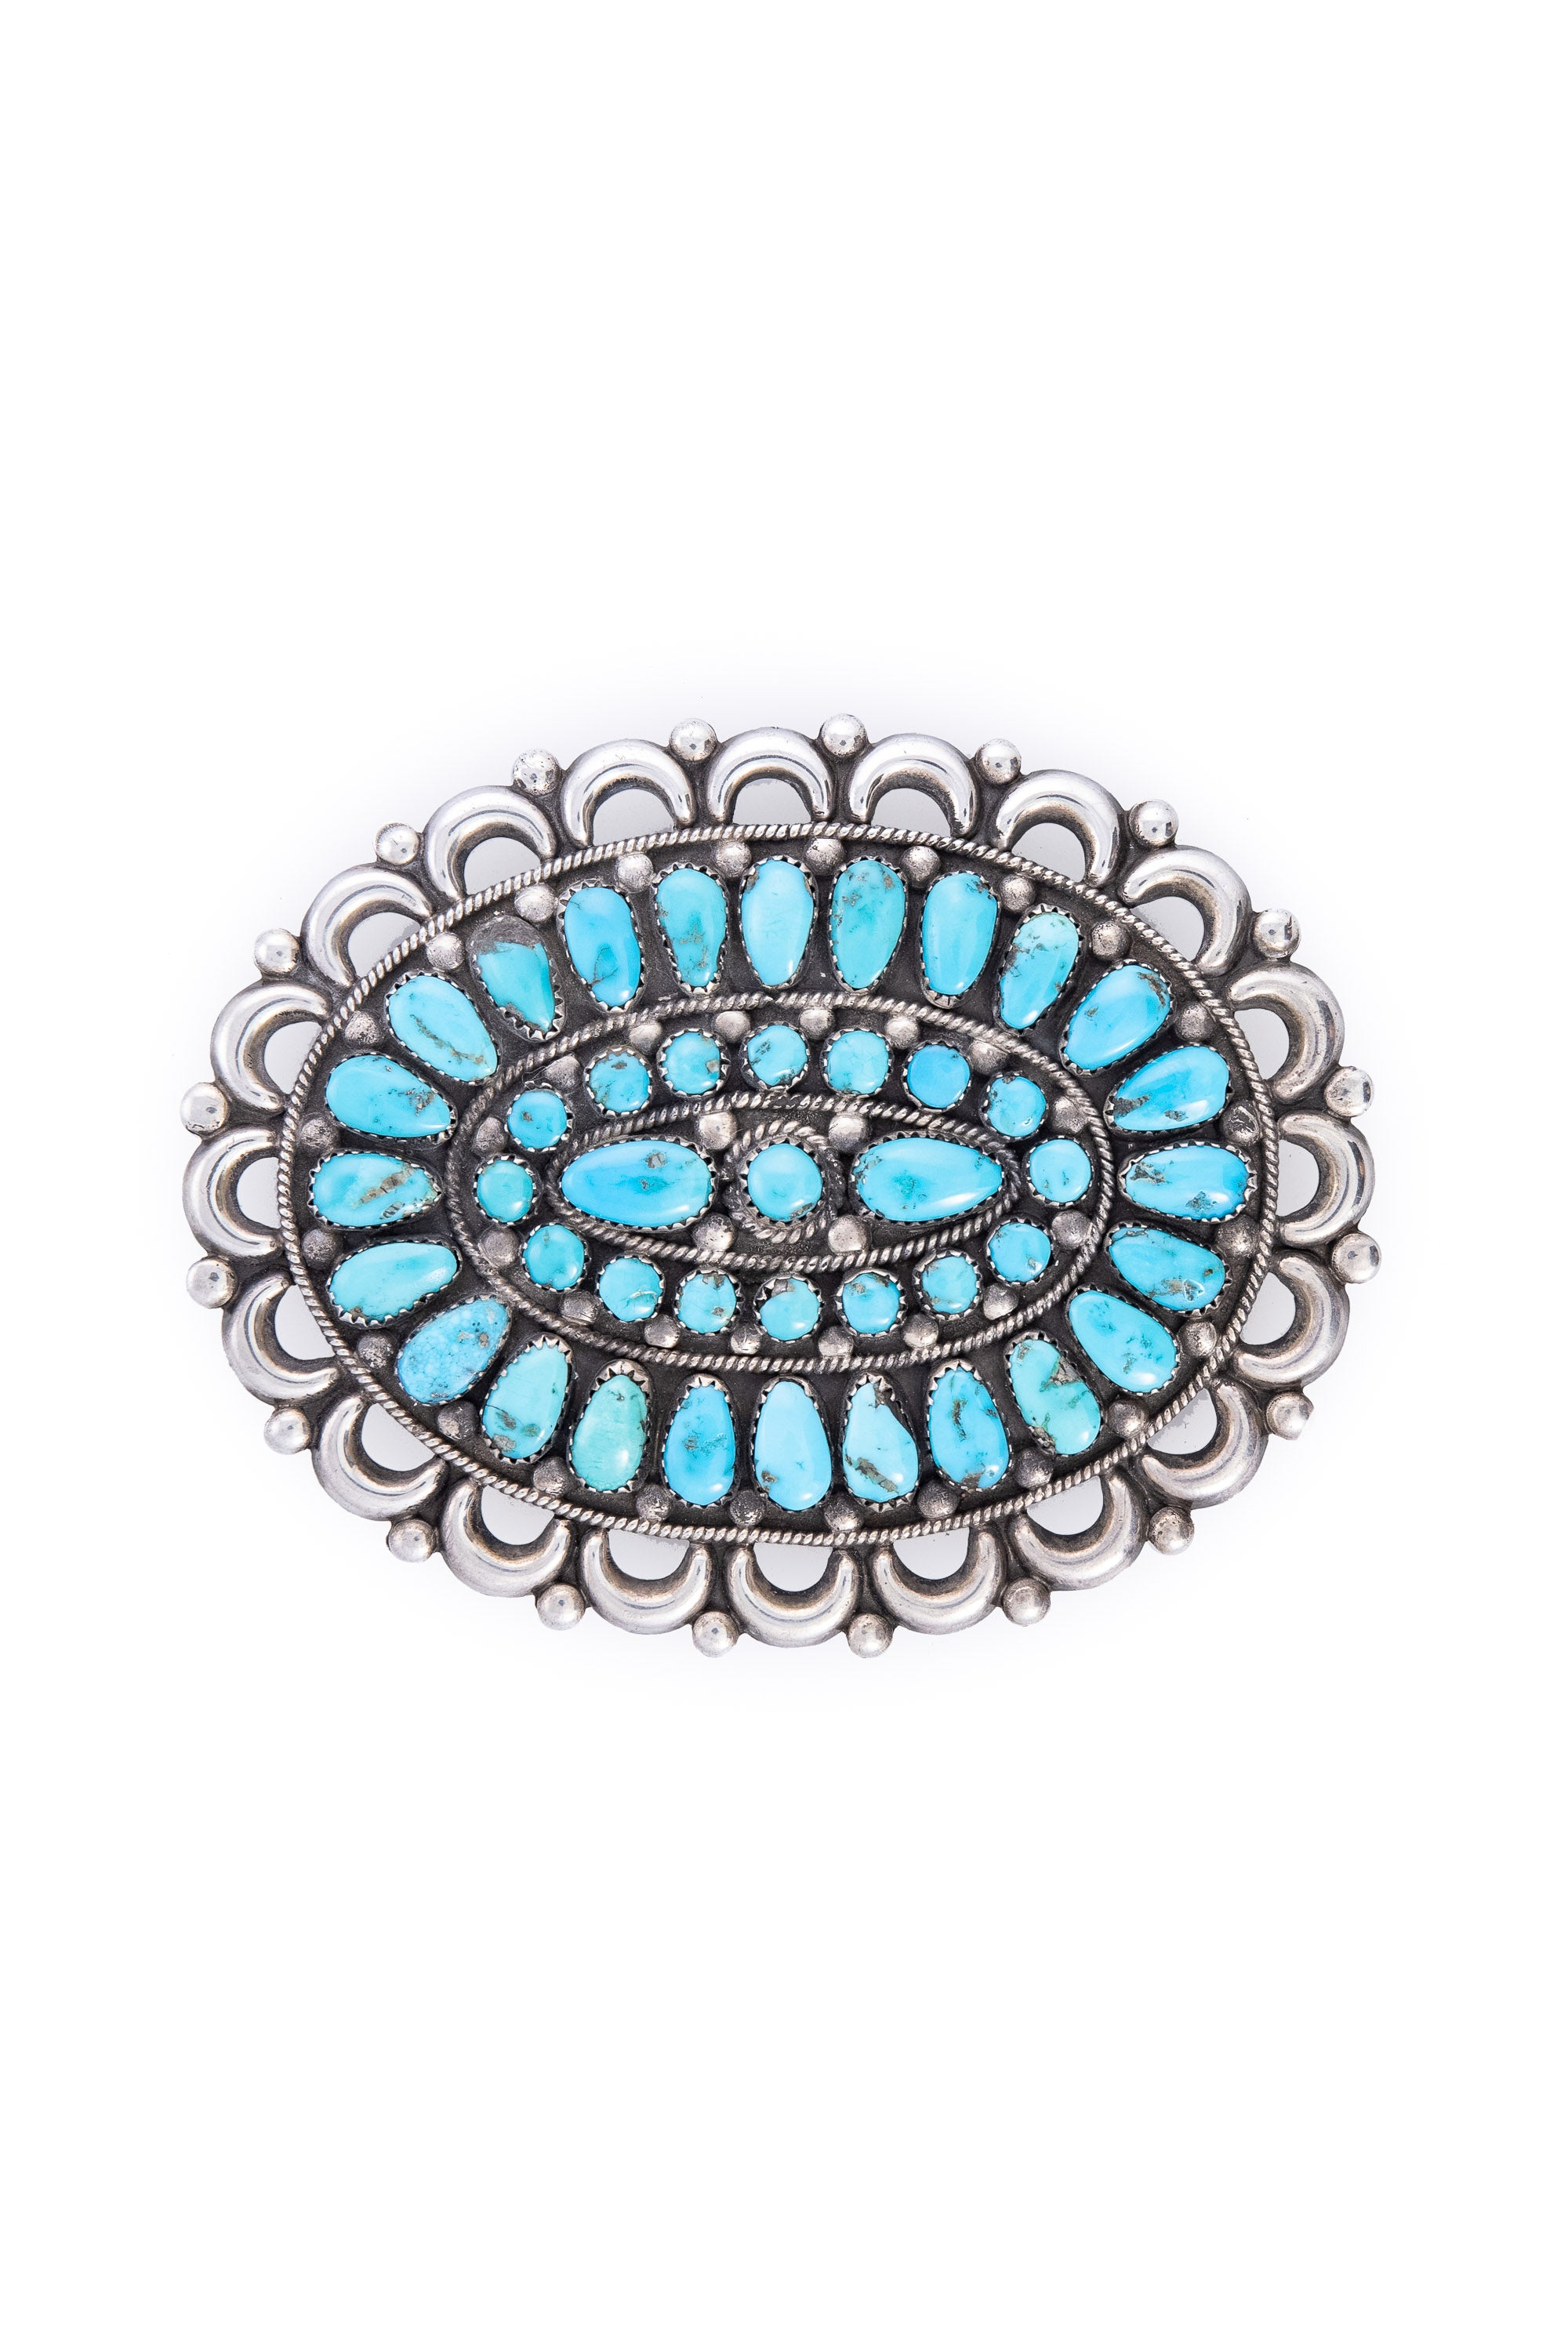 Pin, Cluster, Turquoise, 511